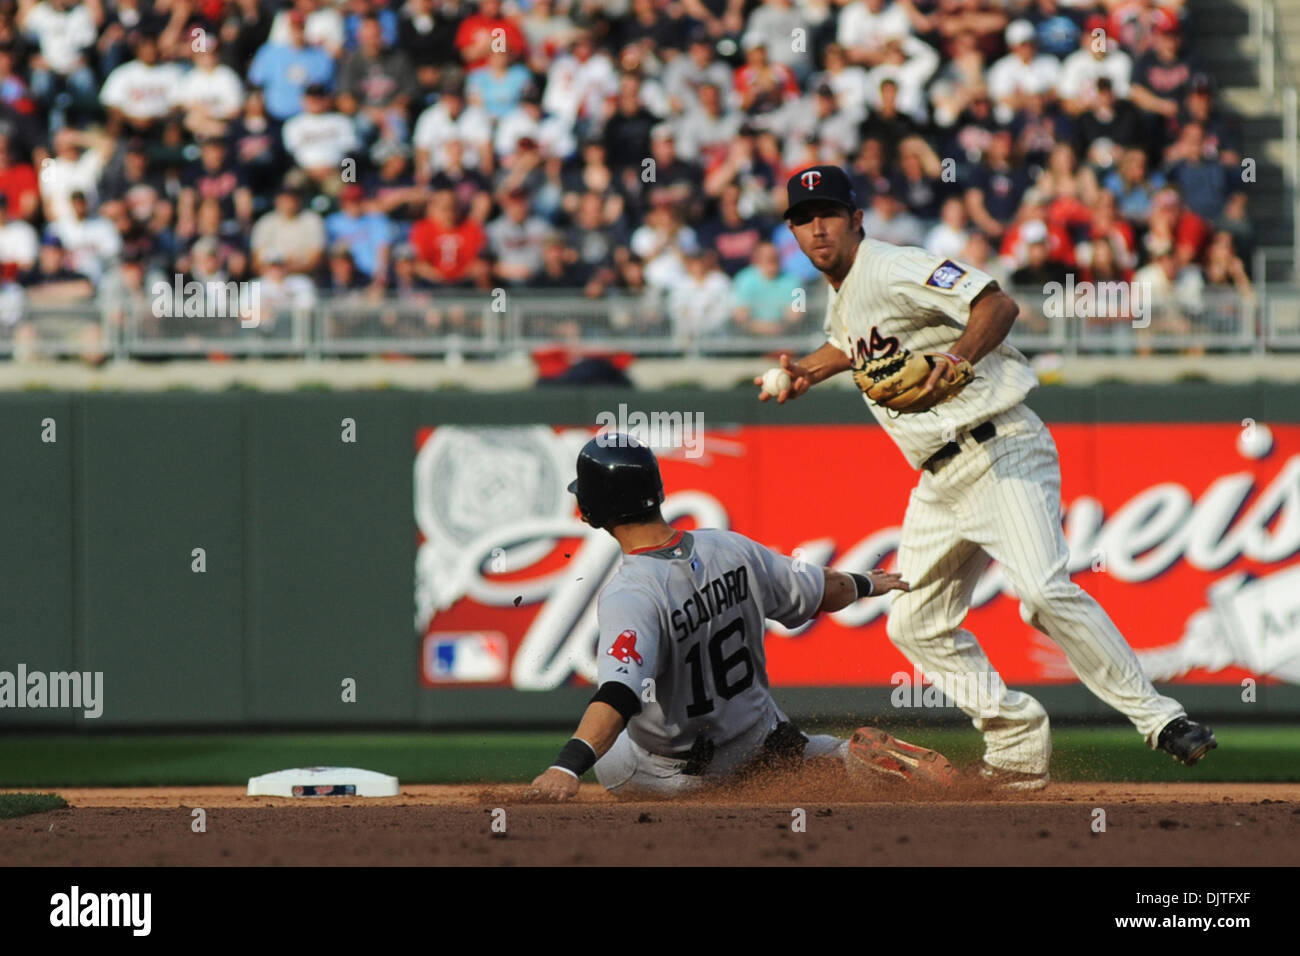 Boston Red Sox shortstop Marco Scutaro #16 slides in to 2nd base ...